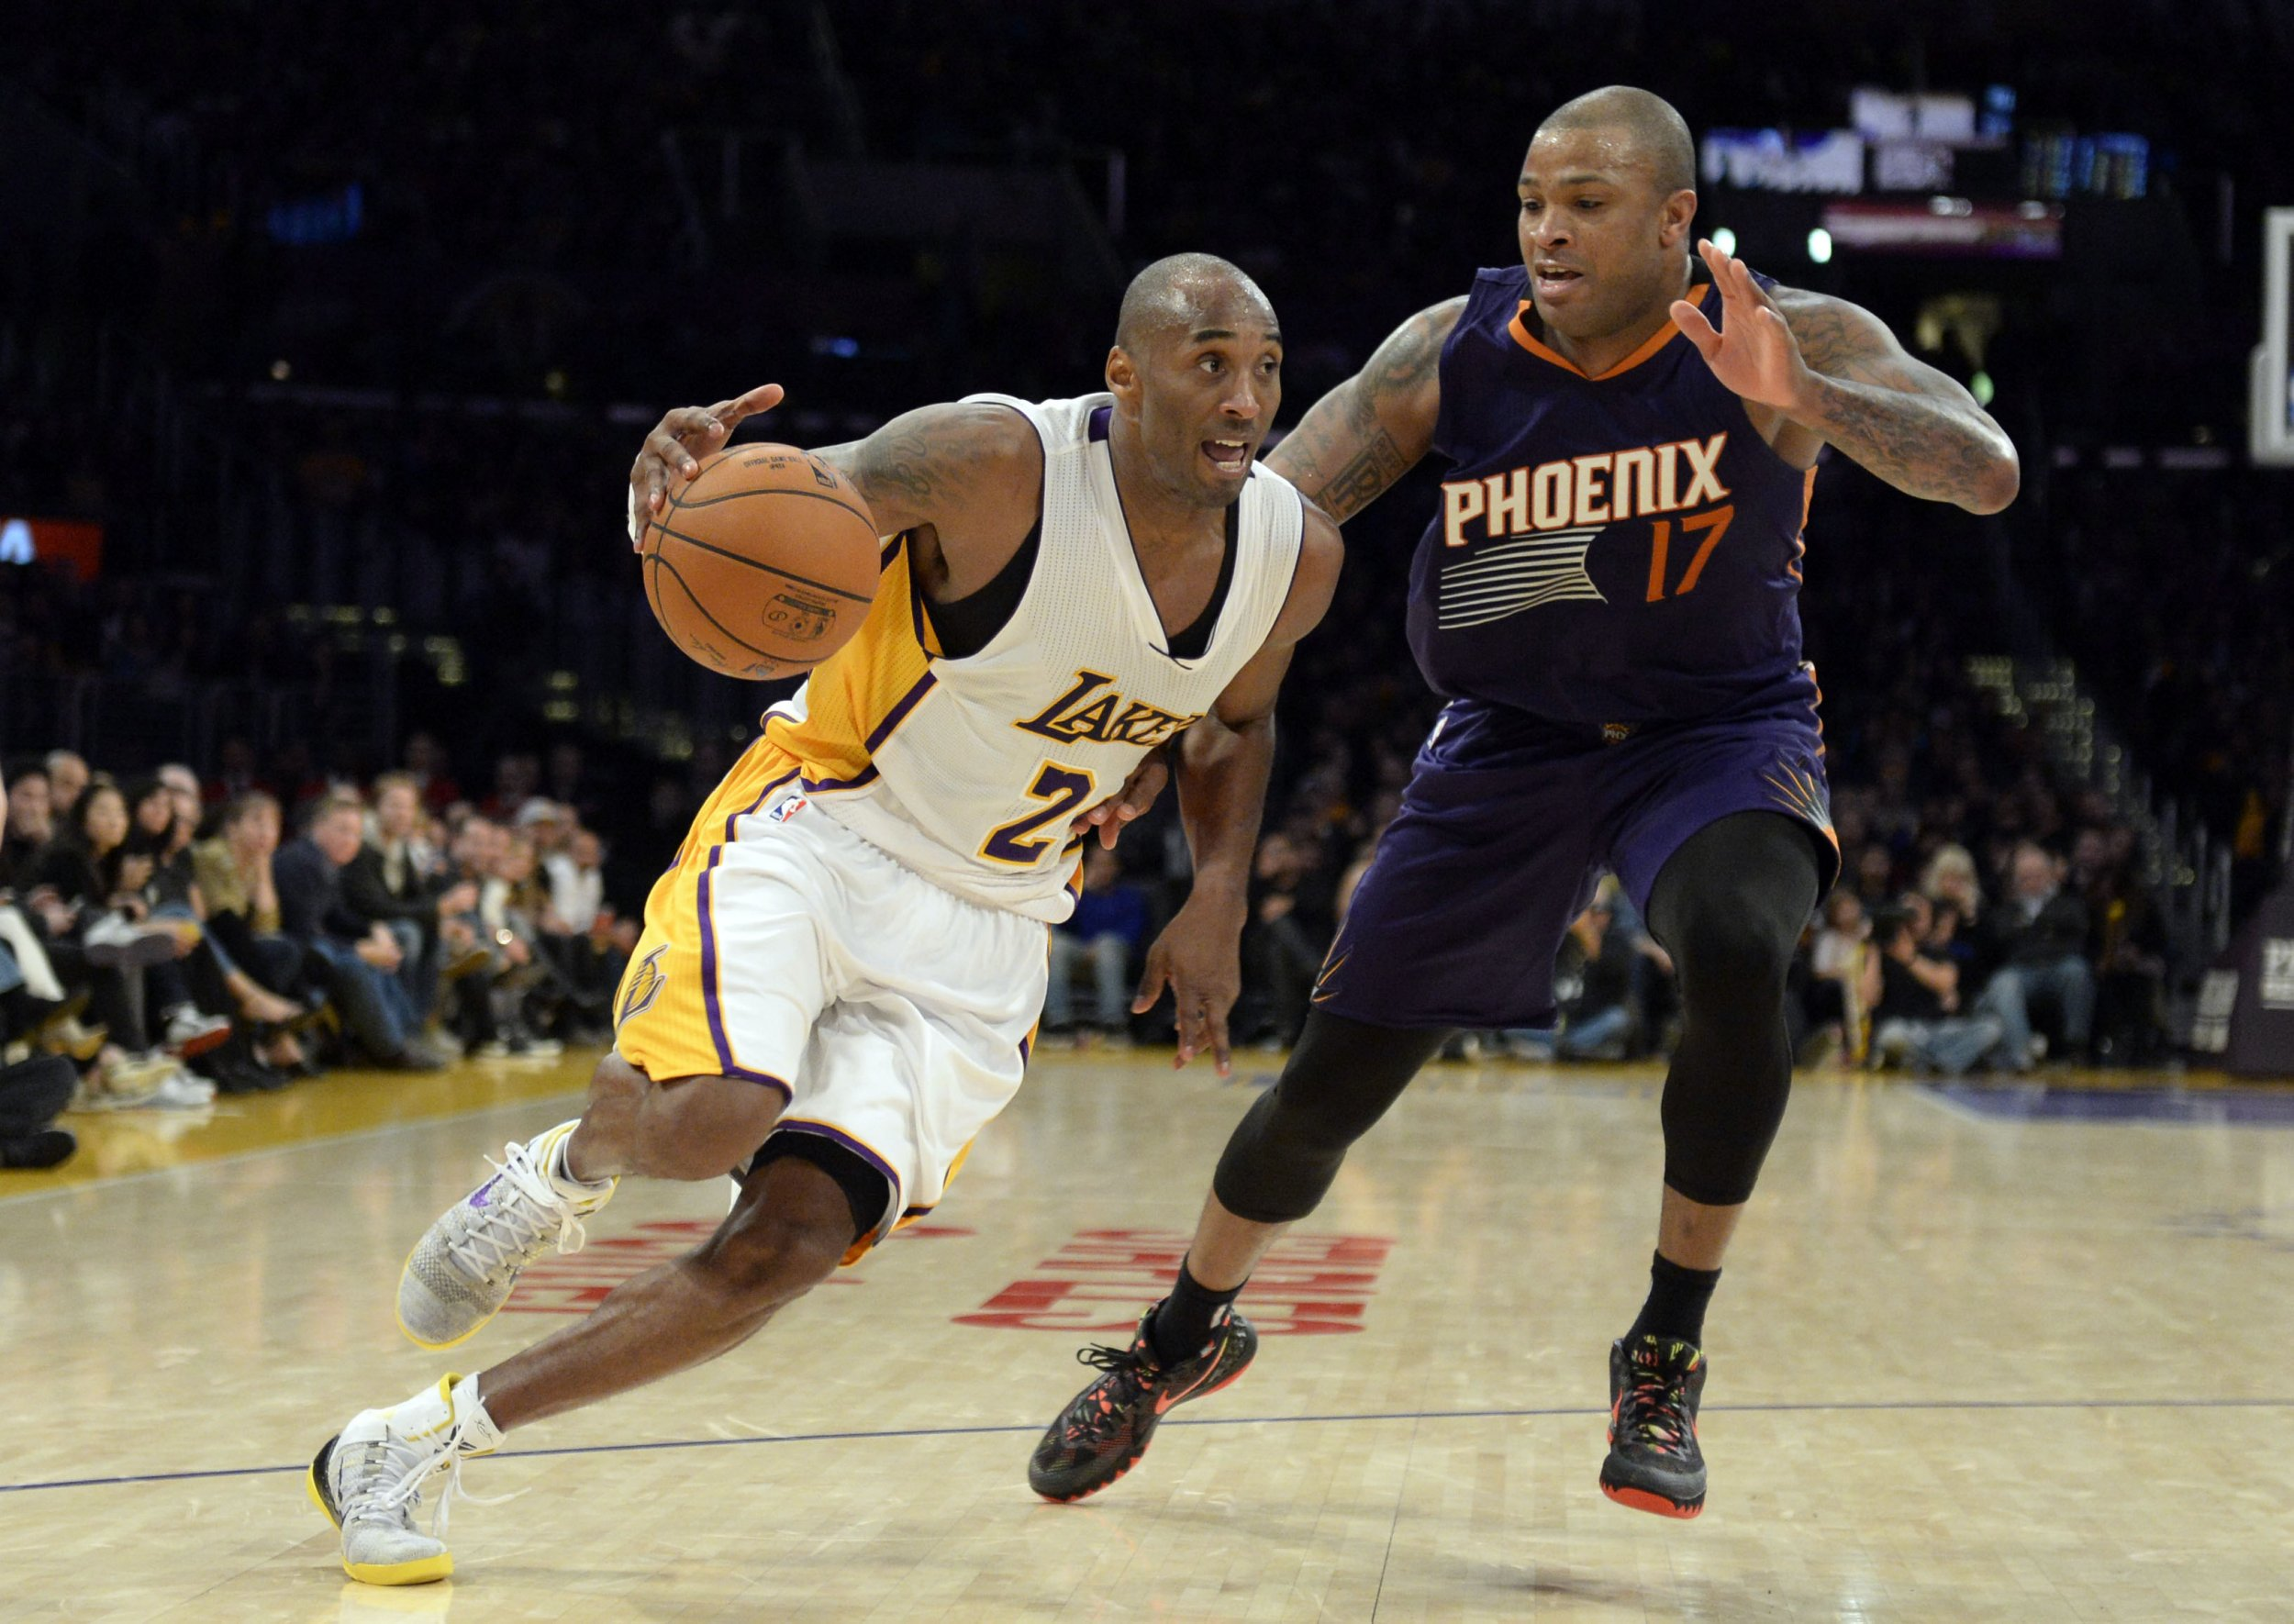 2014-12-29T044928Z_774043271_NOCID_RTRMADP_3_NBA-PHOENIX-SUNS-AT-LOS-ANGELES-LAKERS